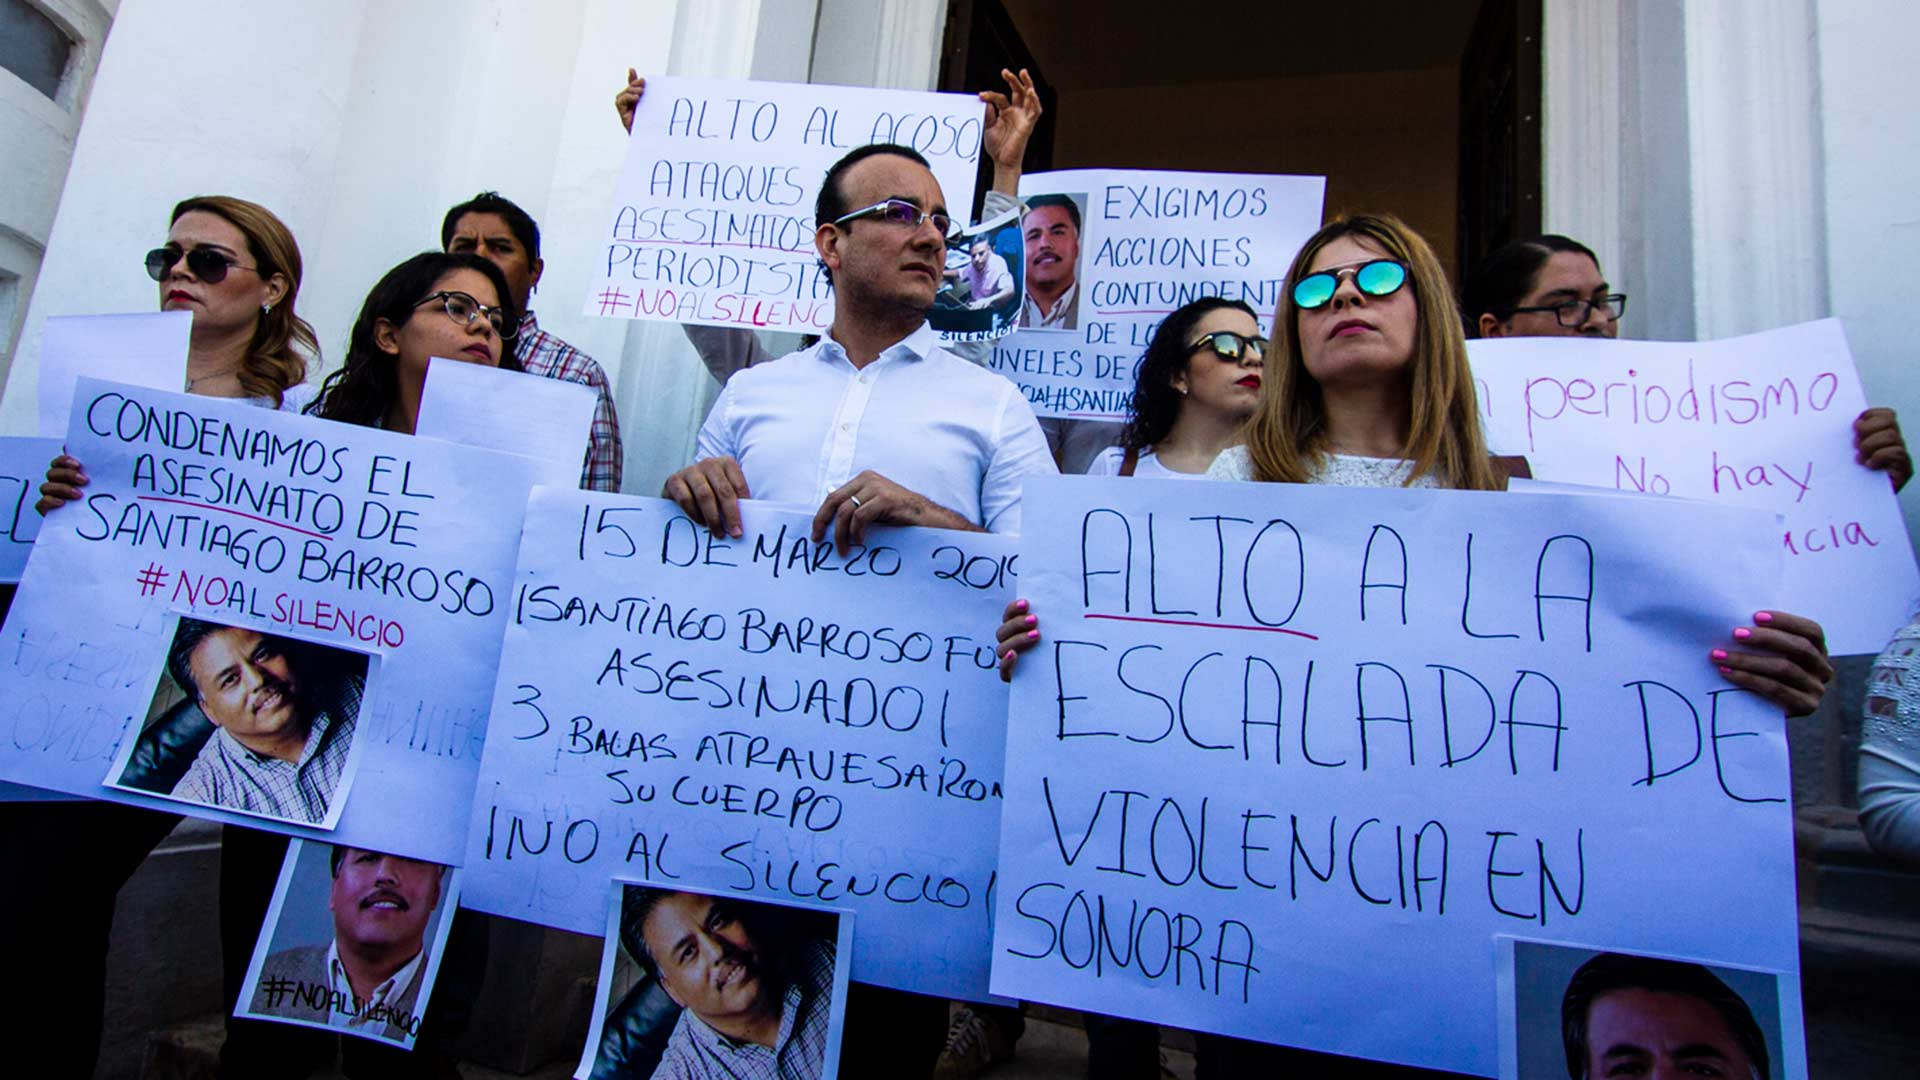 Protesting reporters stand in front of the Government Palace in Hermosillo to demand resolution of Santiago Barroso's murder as well as broader protection of press freedom.